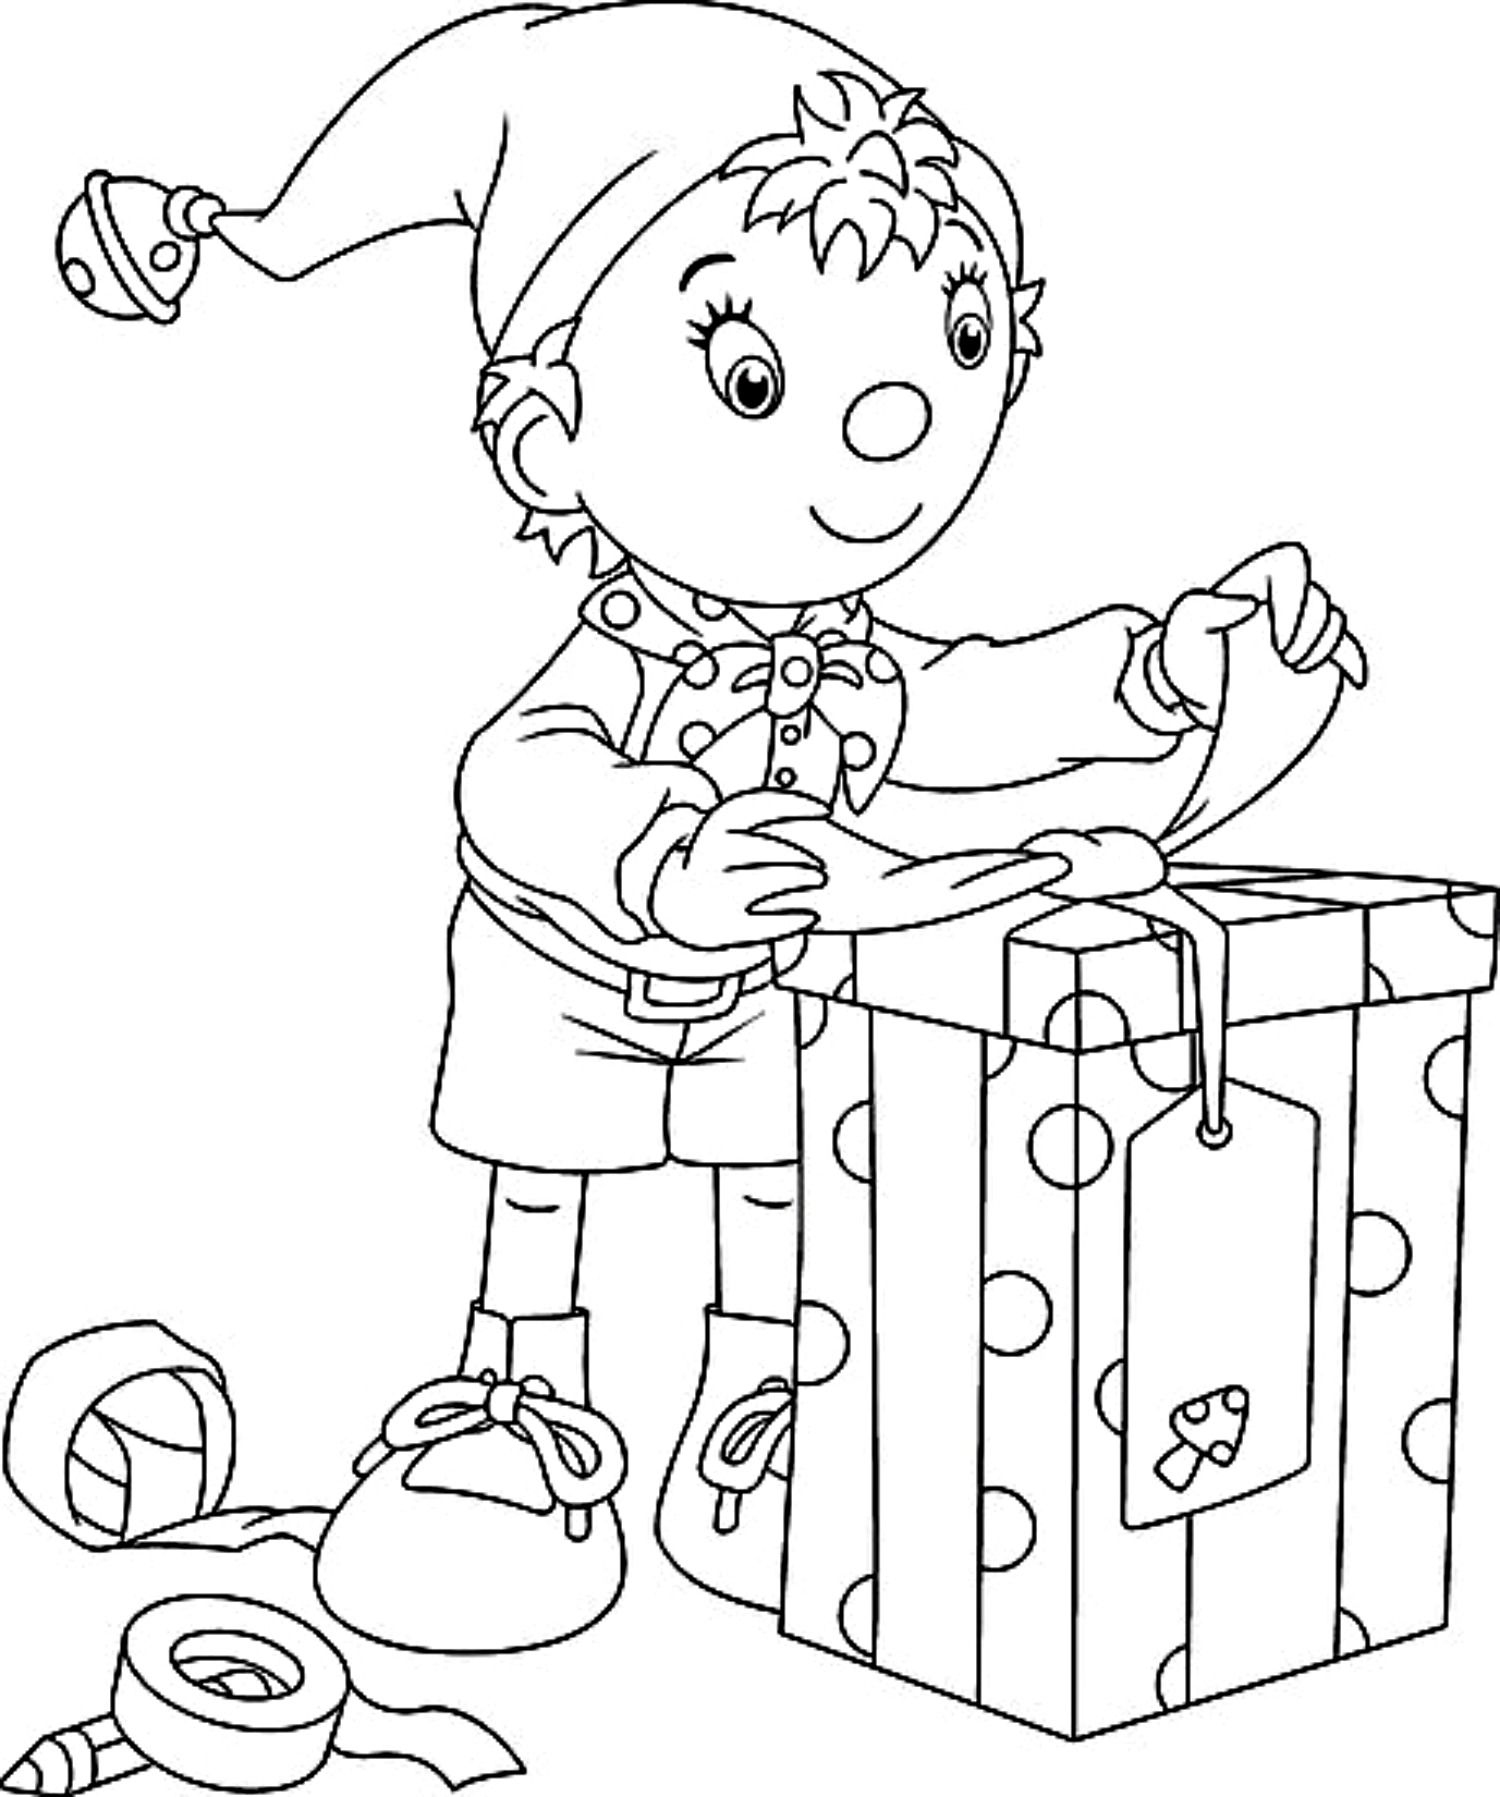 Christmas Coloring Elf Pages With CHRISTMAS COLORING PAGE Santa Song And Free Printable